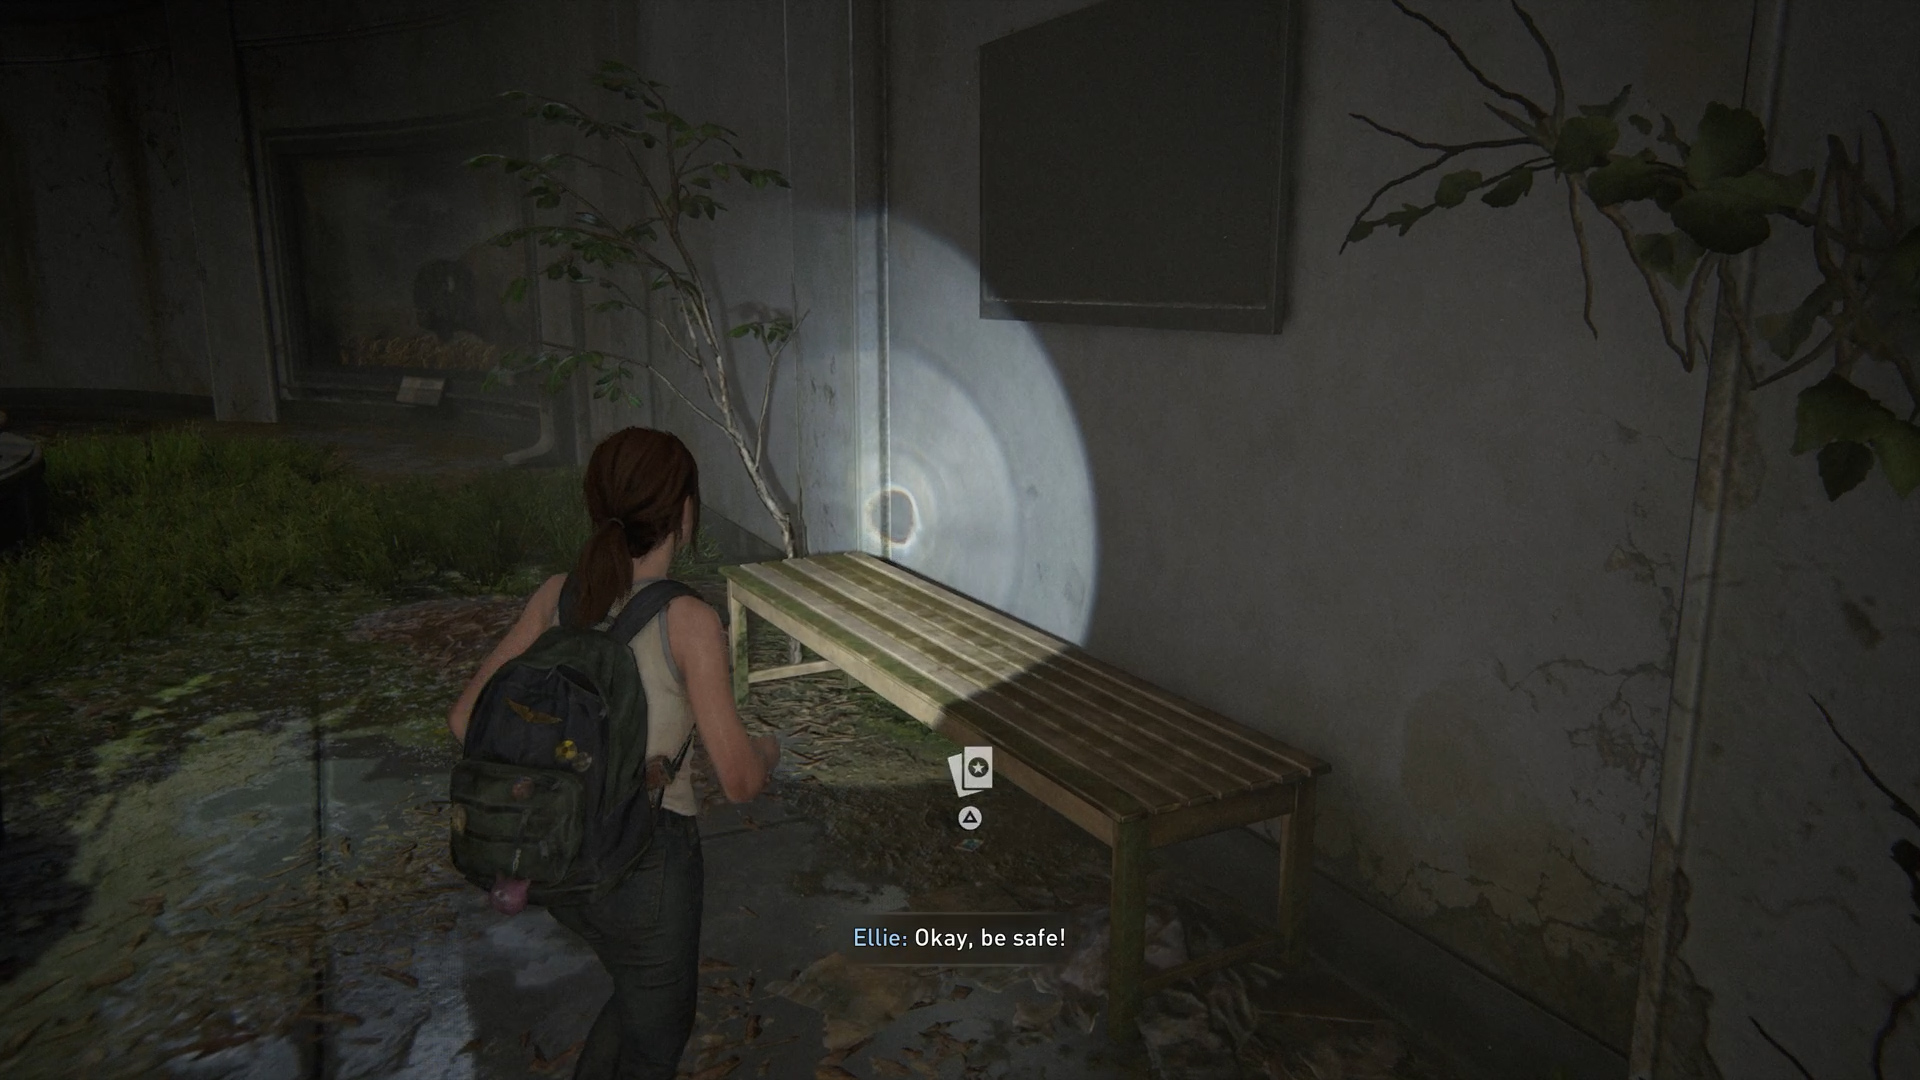 Trading Card locations in Tlou2 - Saura